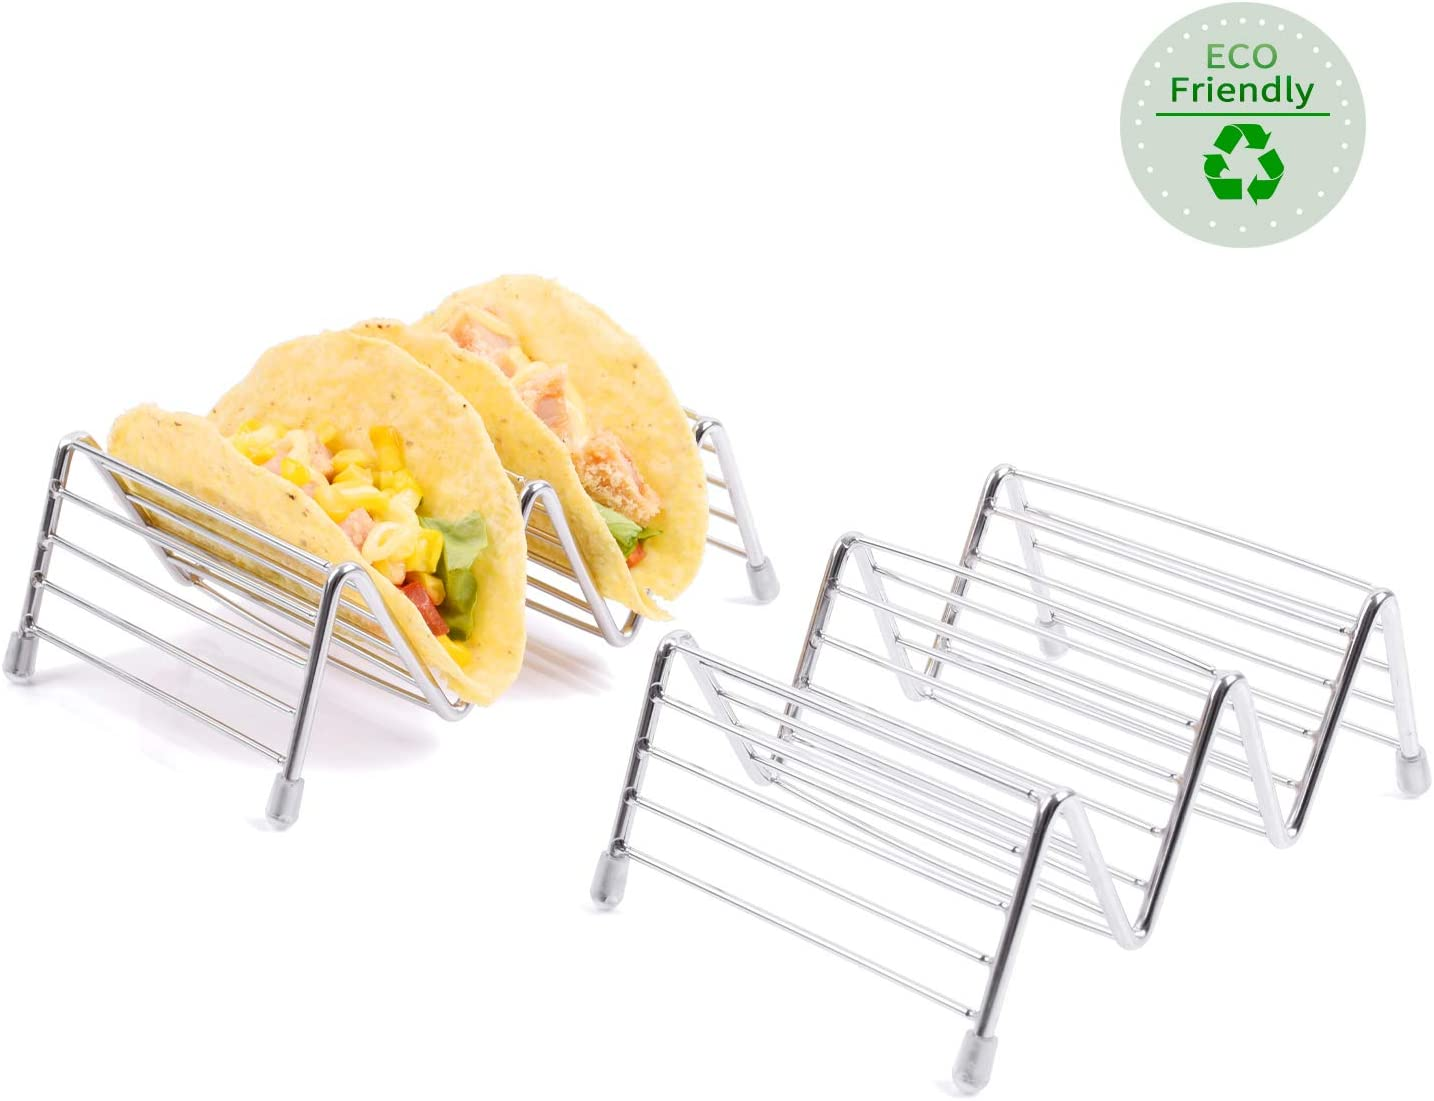 2 Pack Premium Taco Holder Stands,Stainless Steel Taco Holds Up To 2 or 3 Tacos Each as Rack,Oven Safe for Baking,Dishwasher and Grill Safe,Racks Hold Soft /& Hard Shell Tacos,Easy To Fill Taco Rack